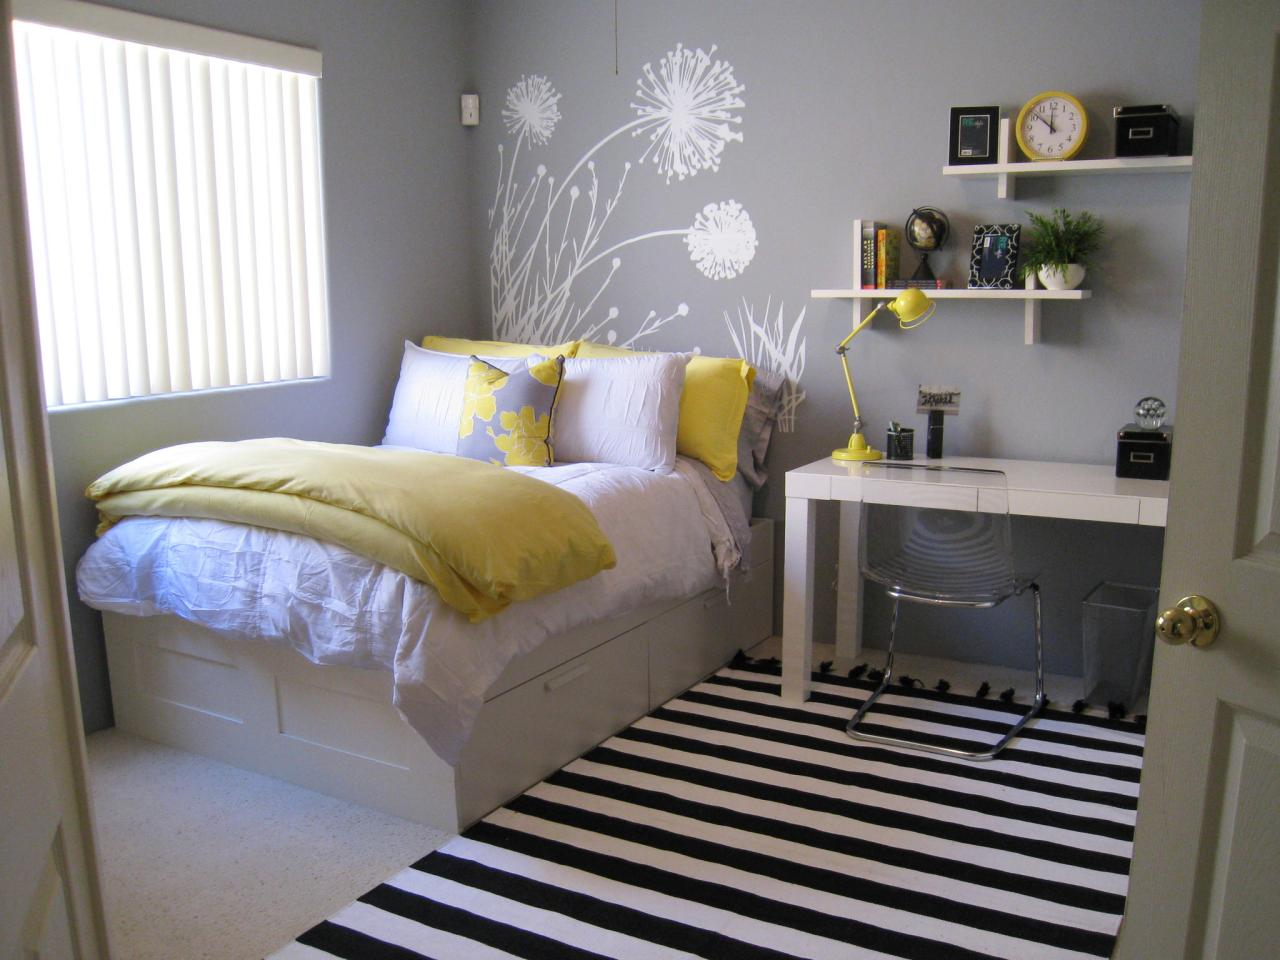 Bedroom color design for girls - Teenage Bedroom Color Schemes